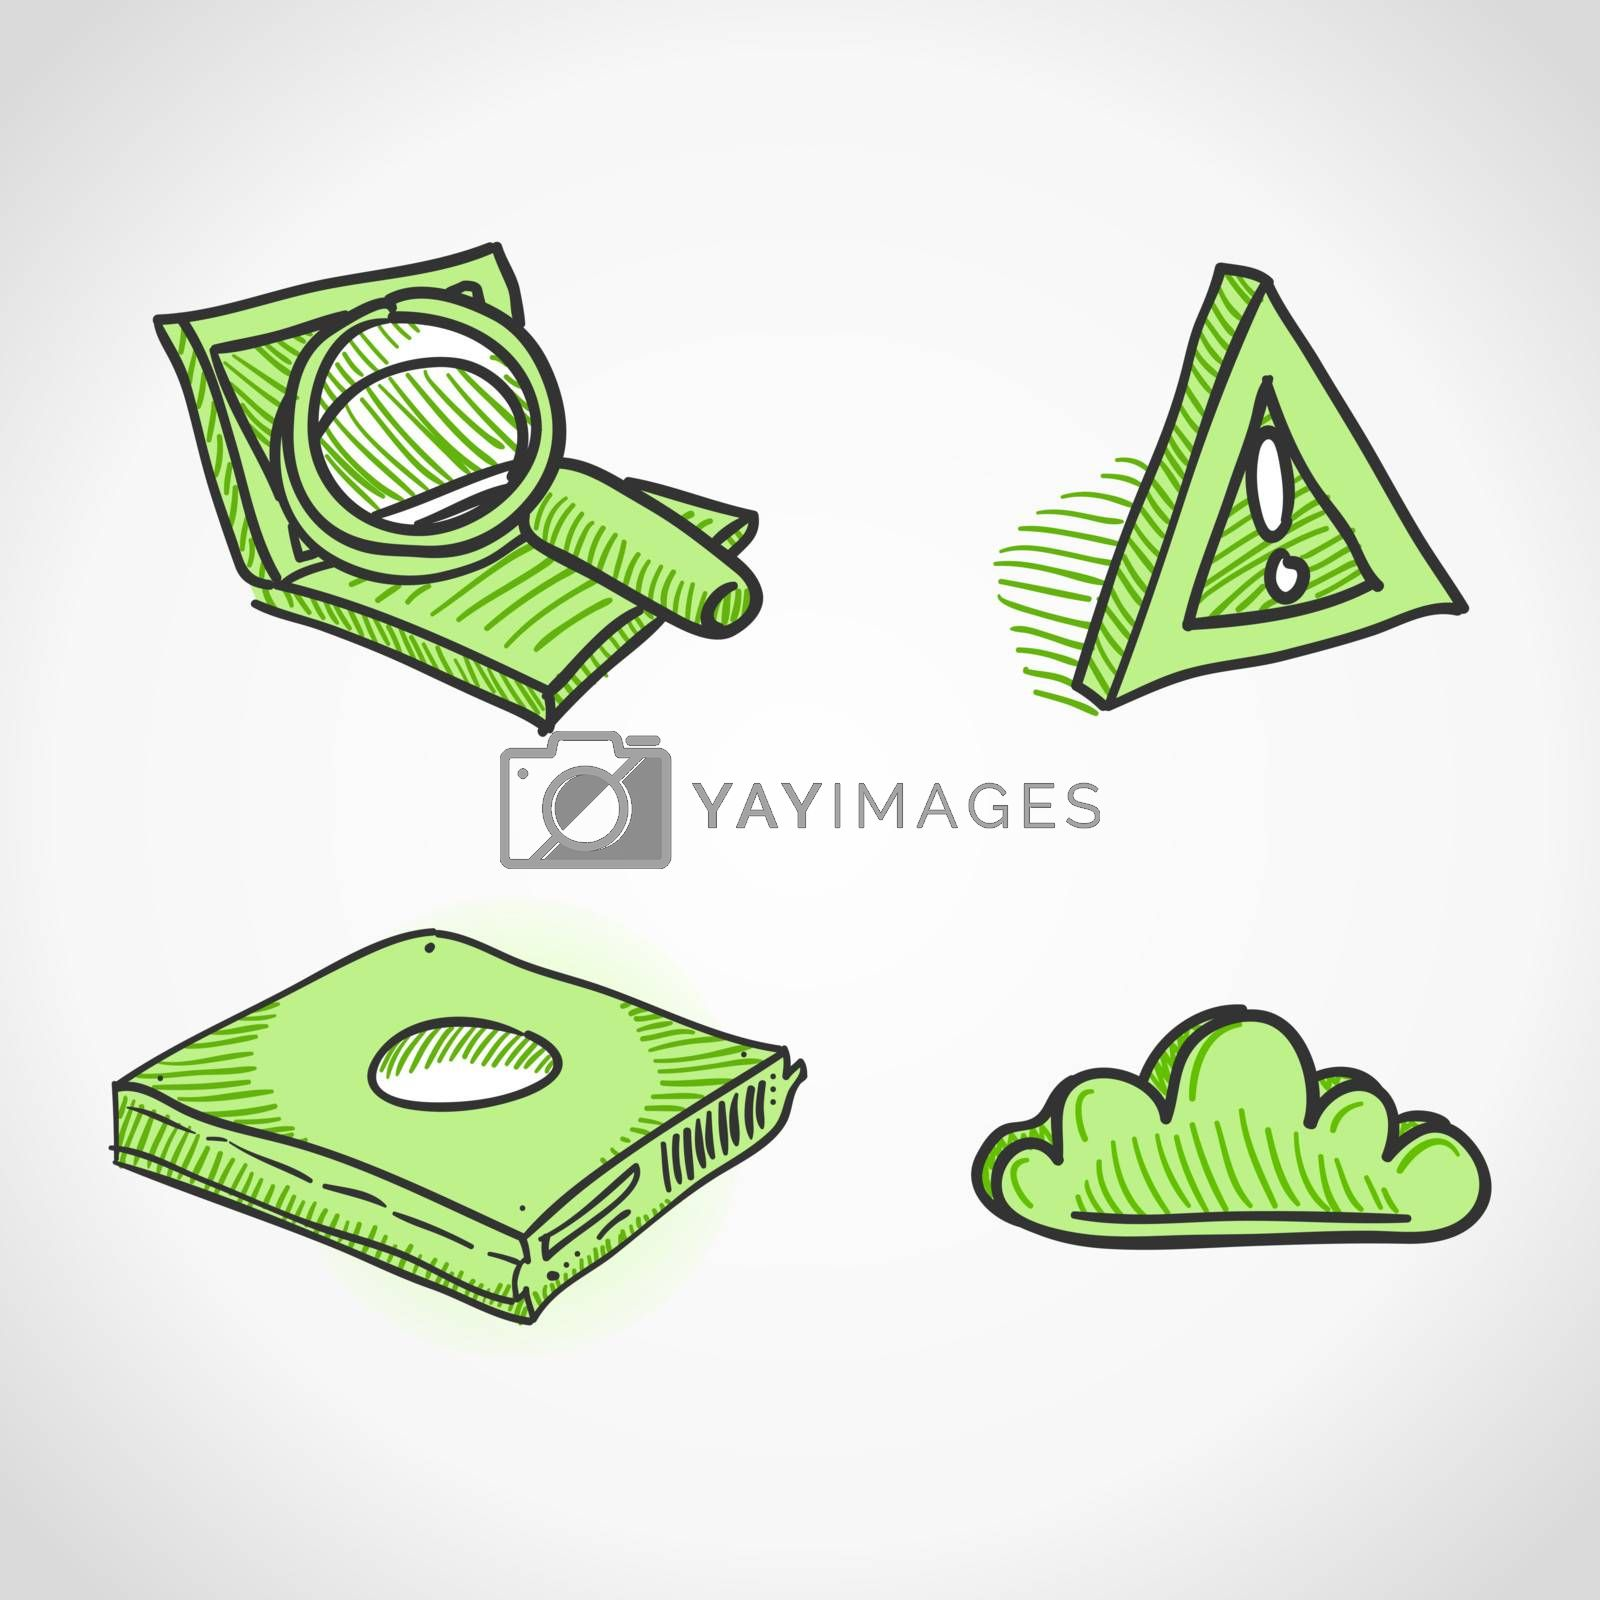 Handmade design elements in green colors isolated on white background